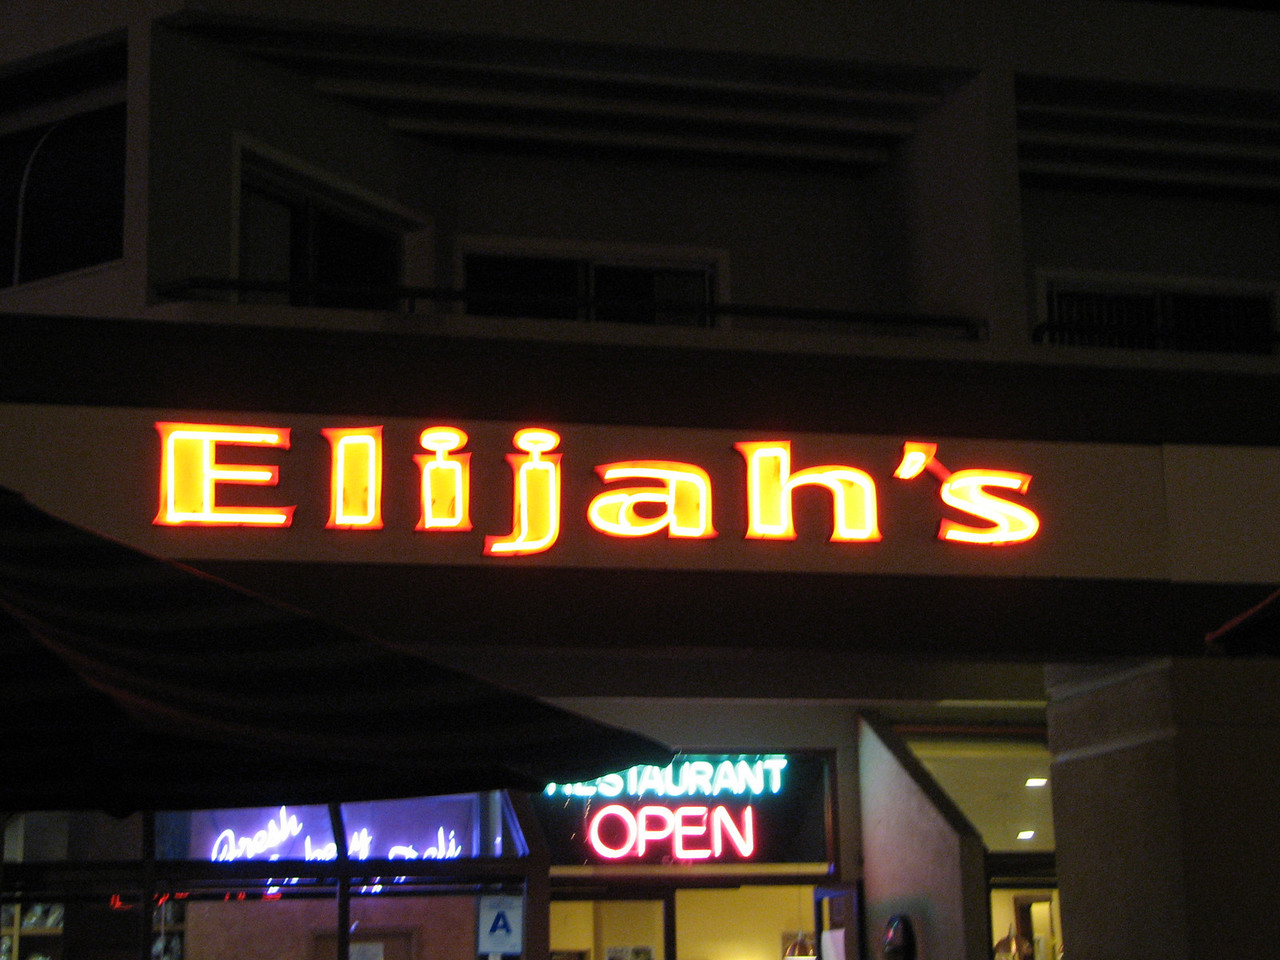 2006 09 16 Sat - Elijah's Deli neon sign in SD with Neal & Michelle Lockett, and Dale Harmon